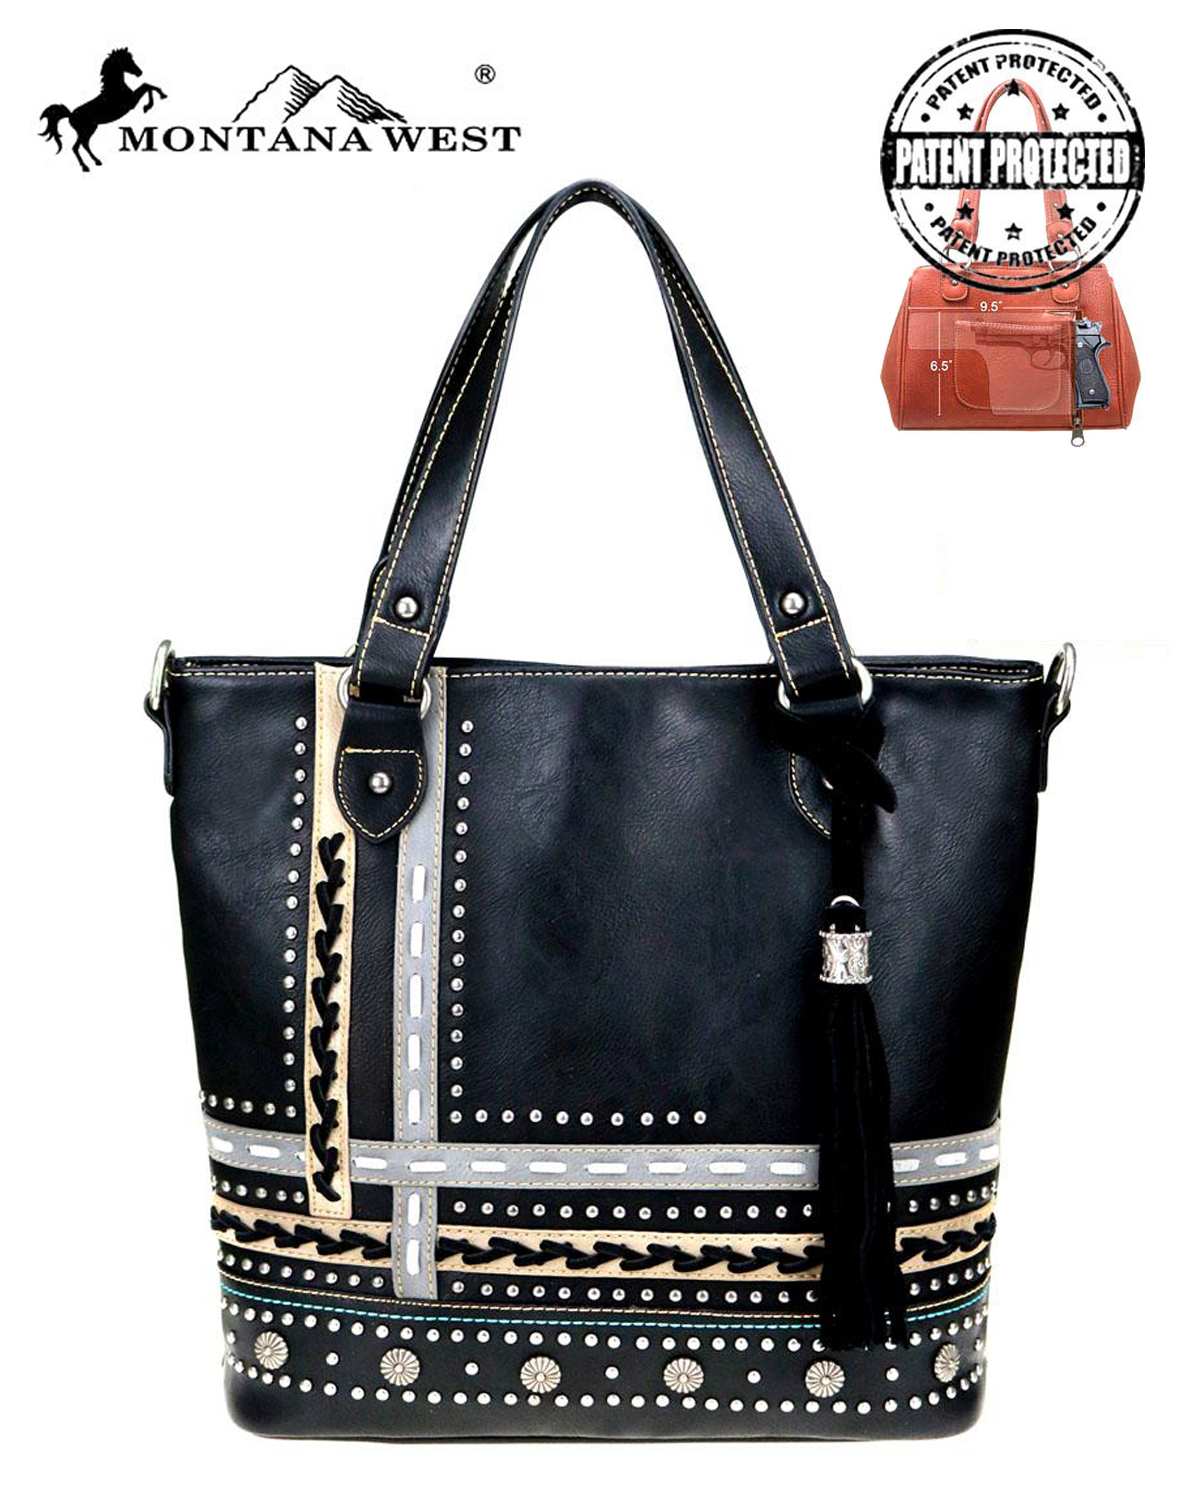 2d2a83cbbffe Get Incredible Discount Prices on our Wholesale Fashion Handbags Today!